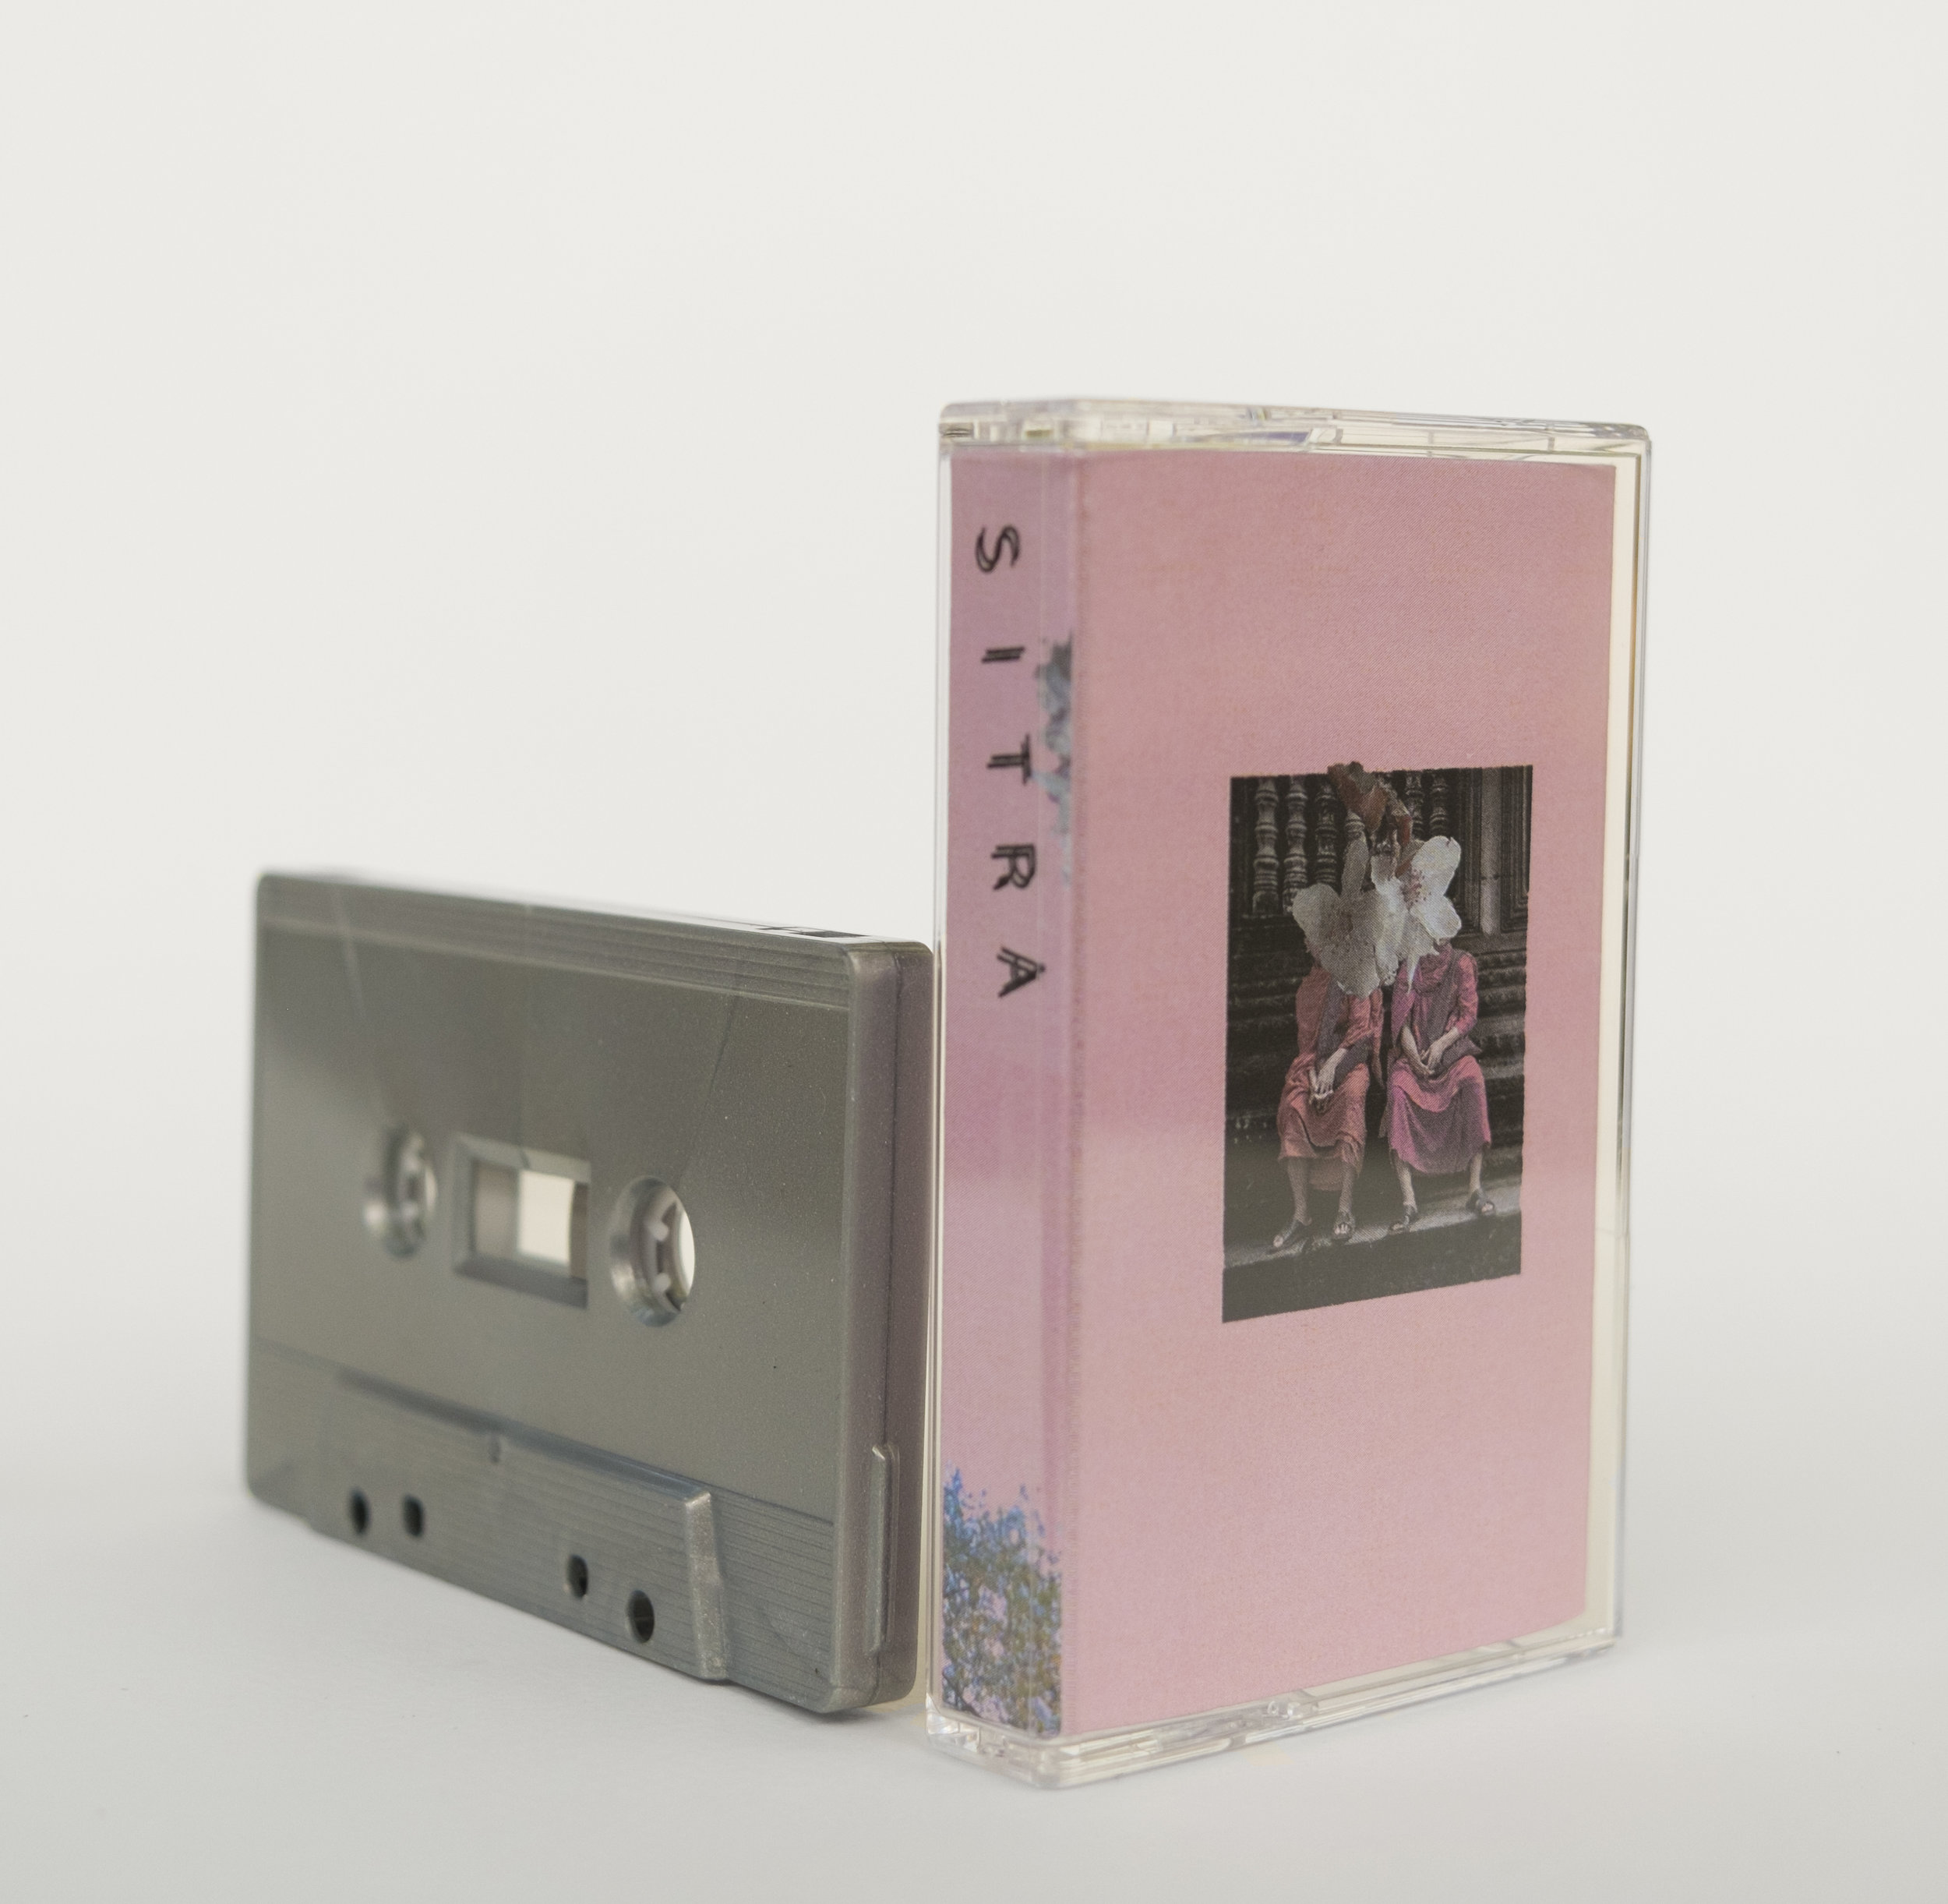 SITRA Cassettes